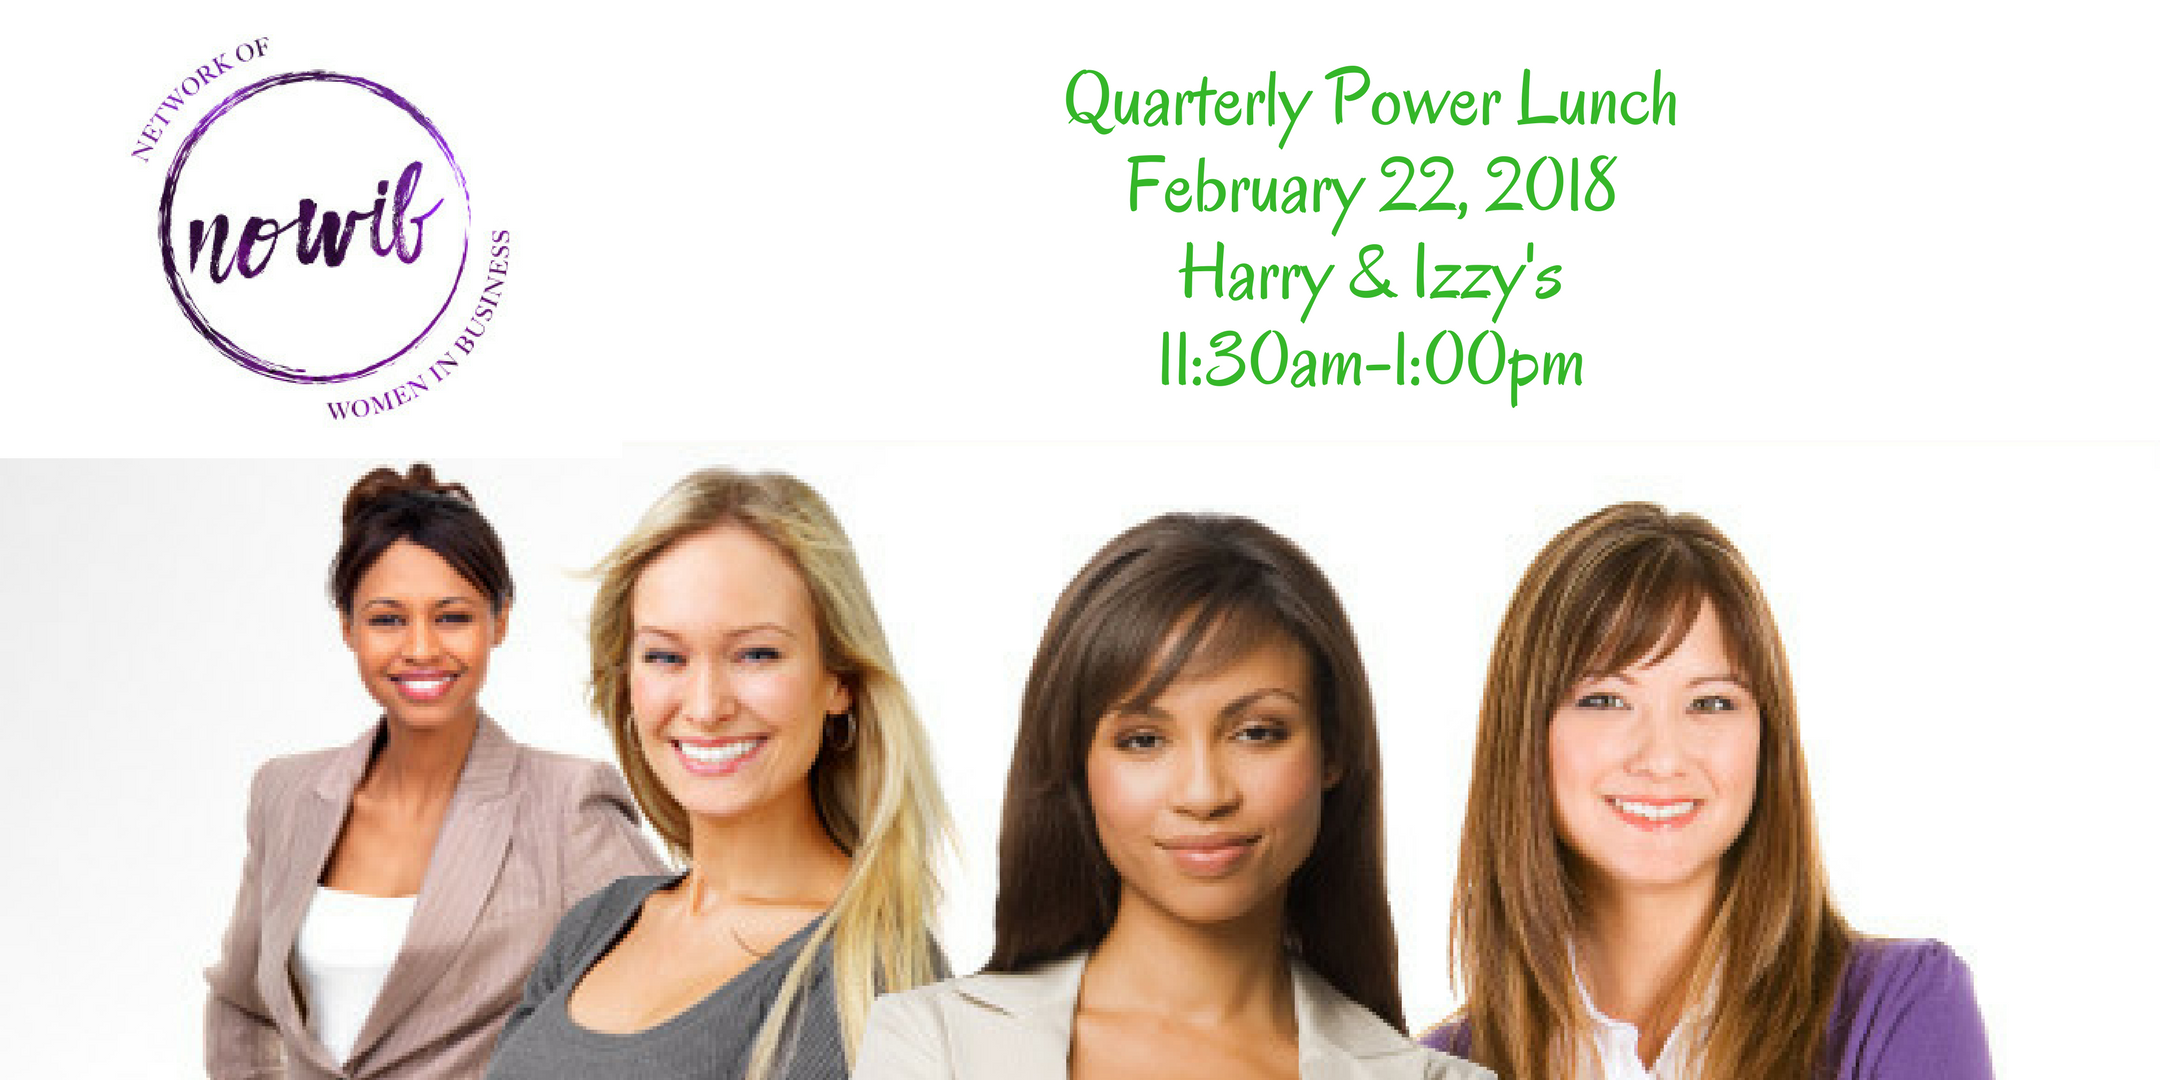 Network of Women in Business Quarterly Power